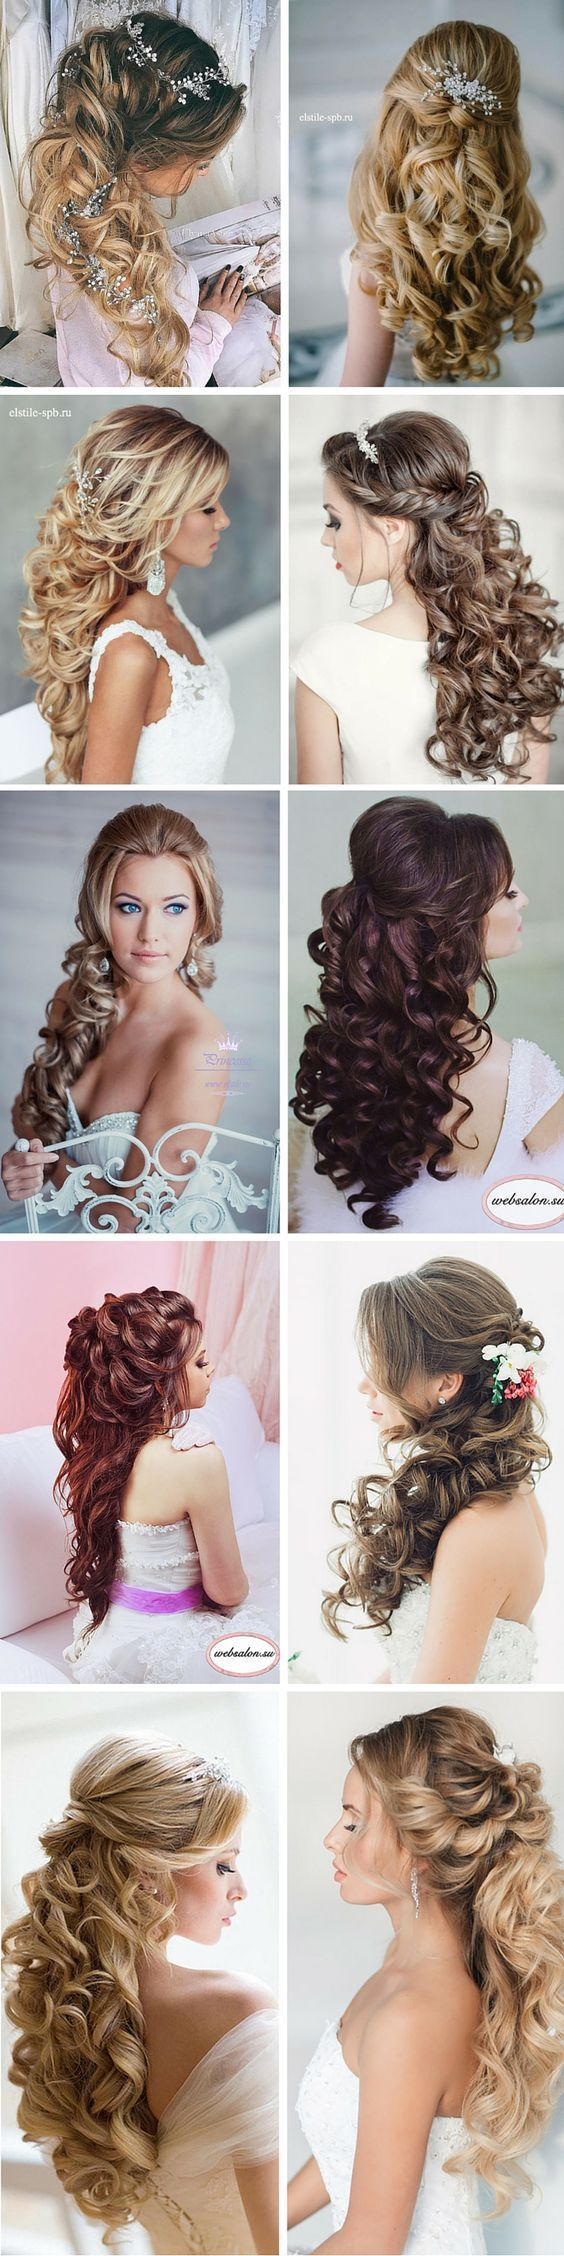 200 Bridal Wedding Hairstyles for Long Hair That Will Inspire: